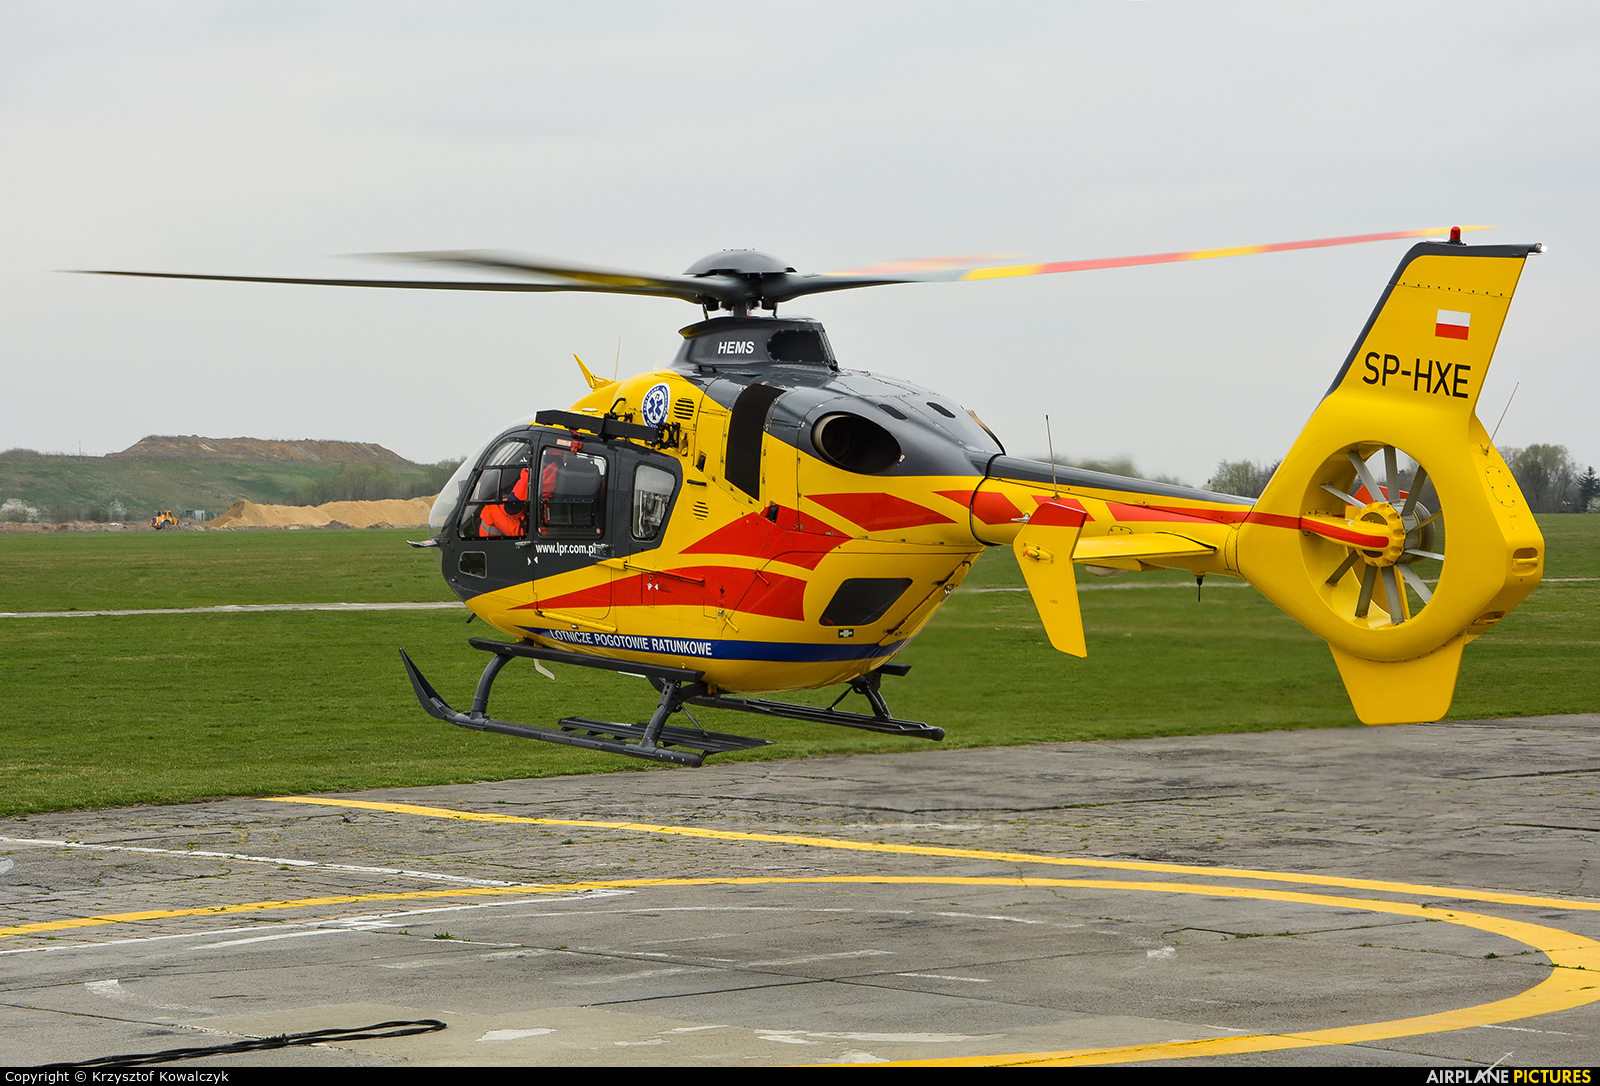 Polish Medical Air Rescue - Lotnicze Pogotowie Ratunkowe SP-HXE aircraft at Gliwice